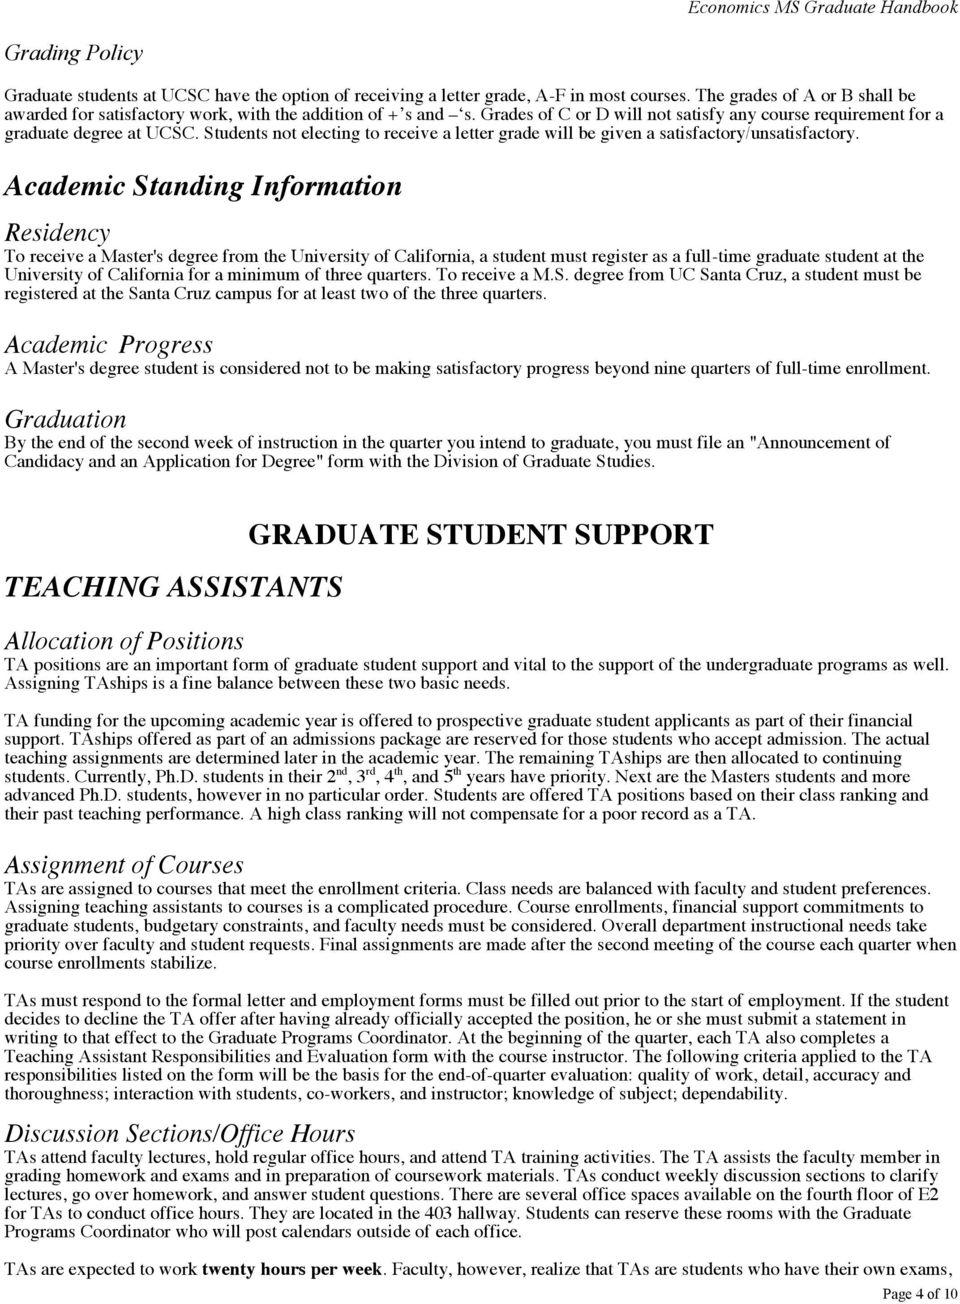 Academic Standing Information Residency To receive a Master's degree from the University of California, a student must register as a full-time graduate student at the University of California for a